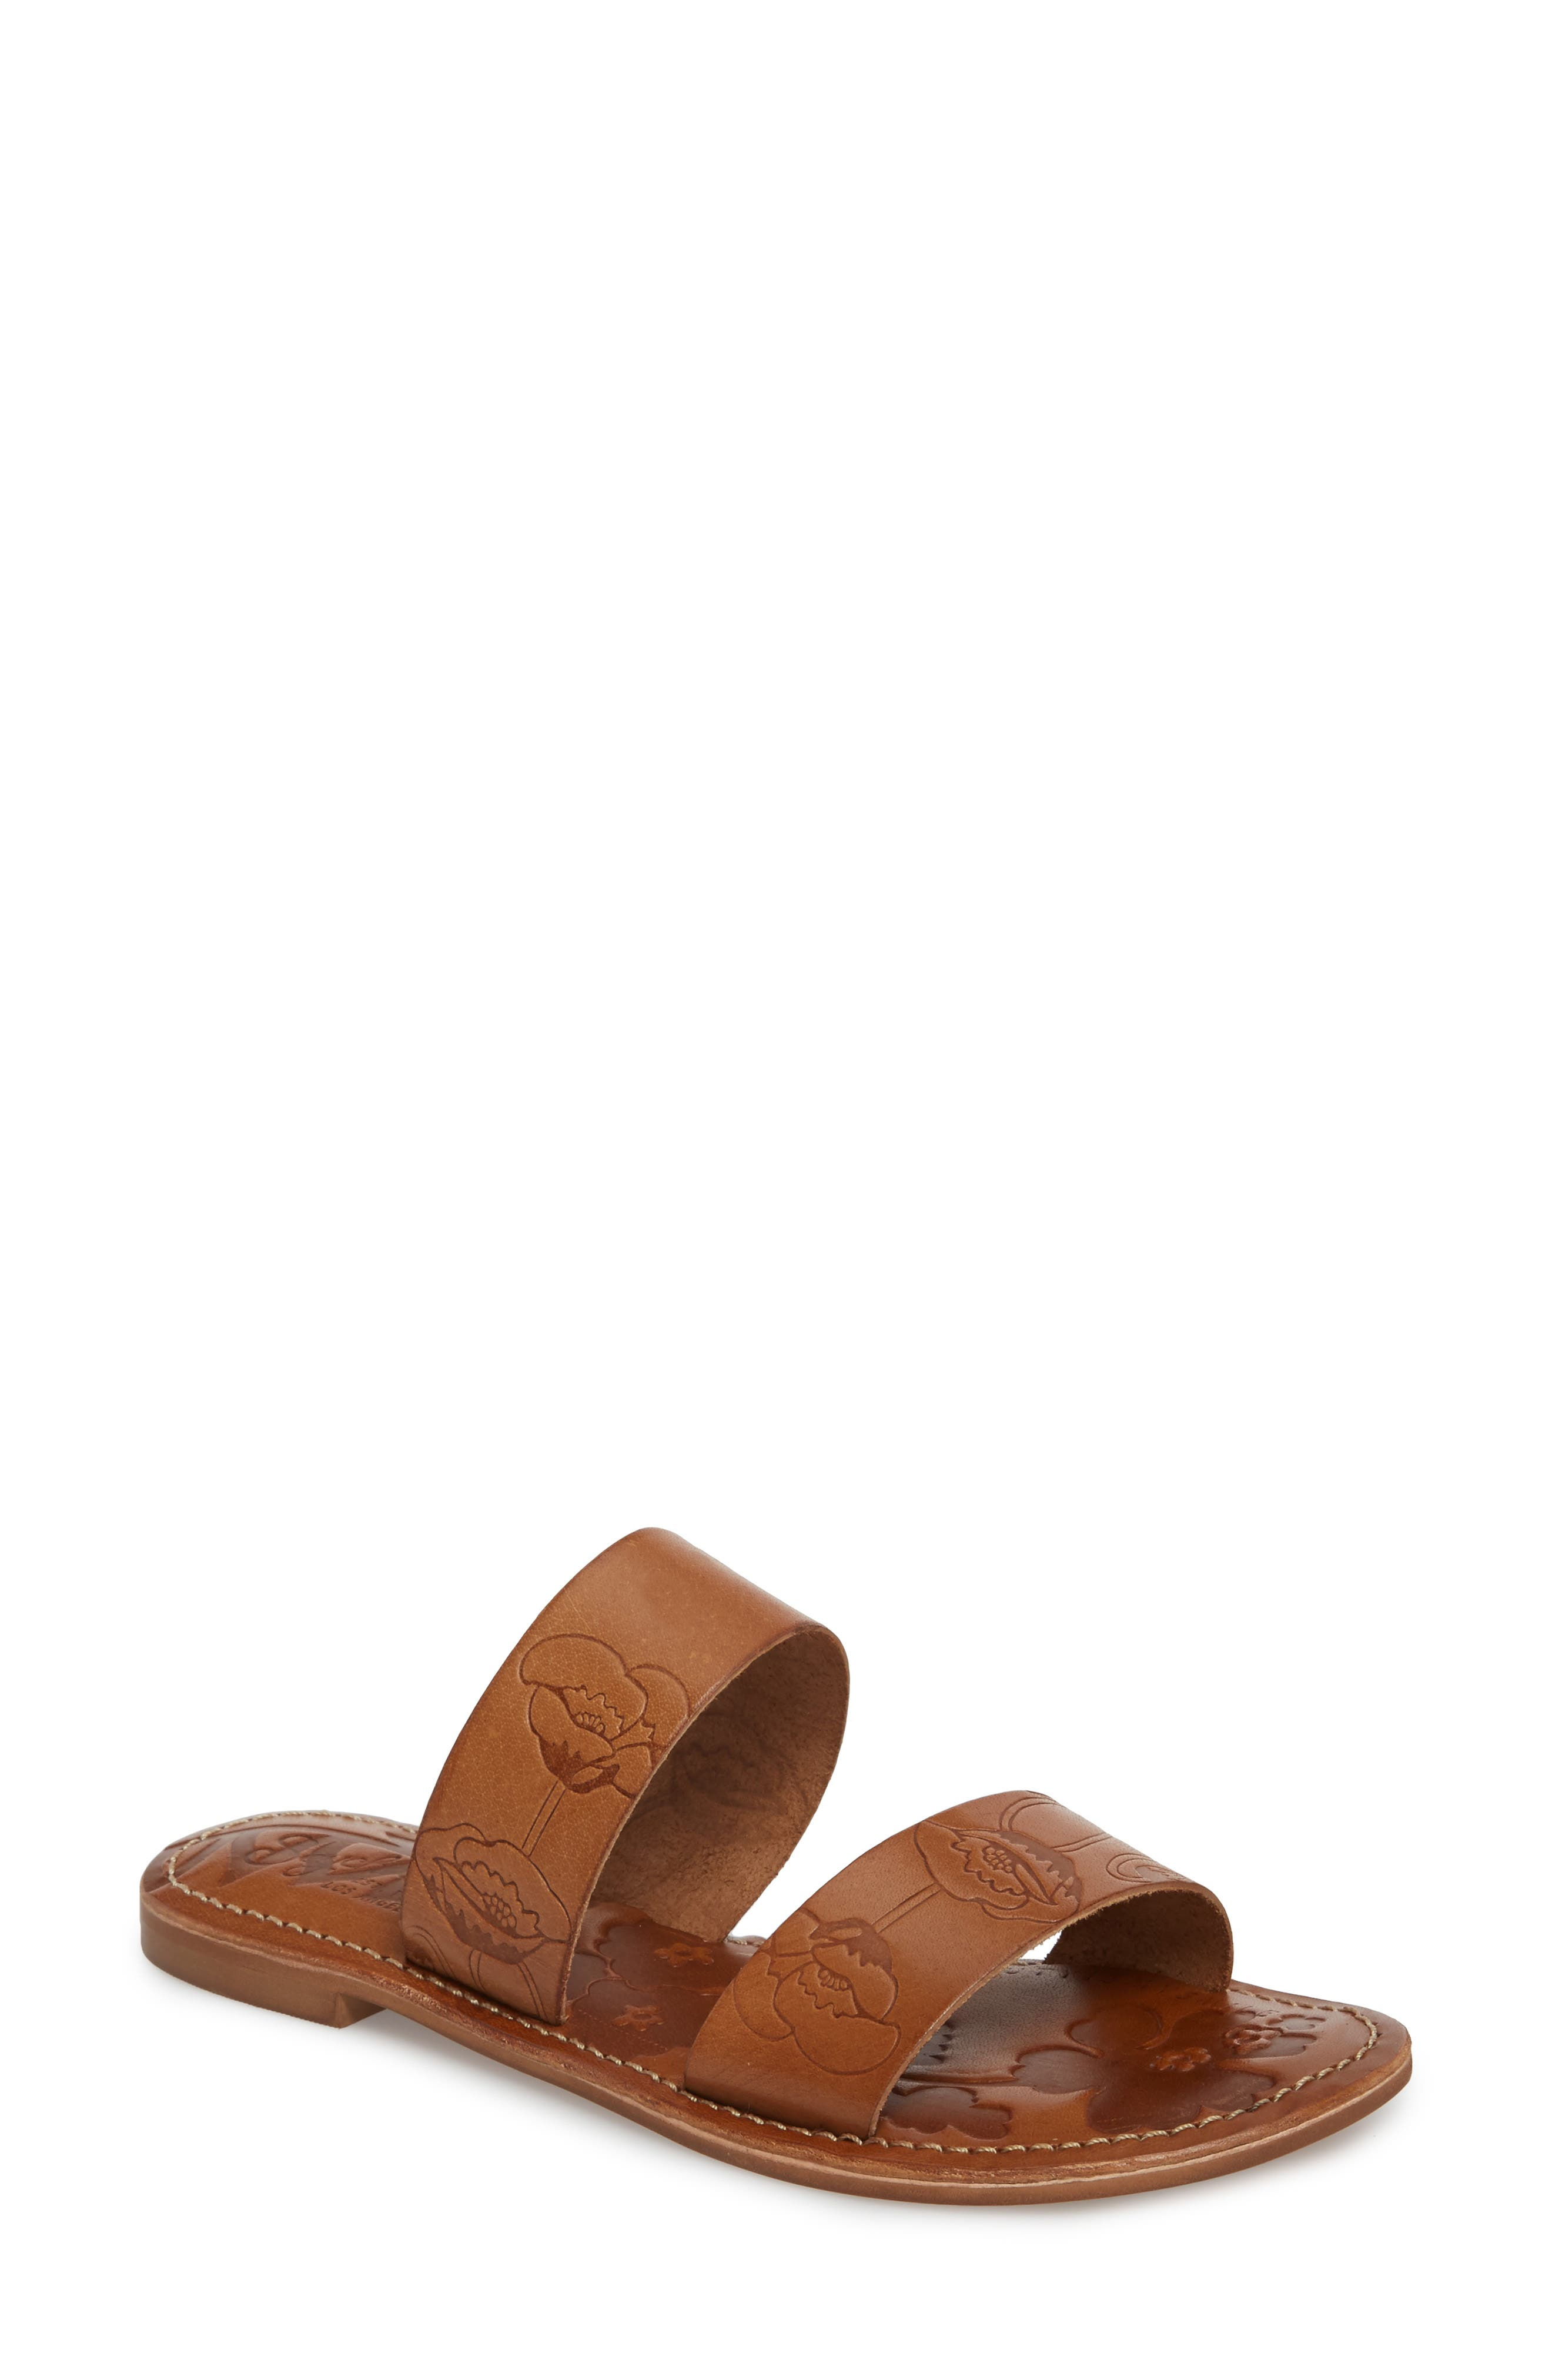 Simple and chic, this minimally detailed slide sandal is one you\\\'ll reach for again and again this season. Style Name: Seychelles Sheroes Slide Sandal (Women). Style Number: 5527426 1. Available in stores.